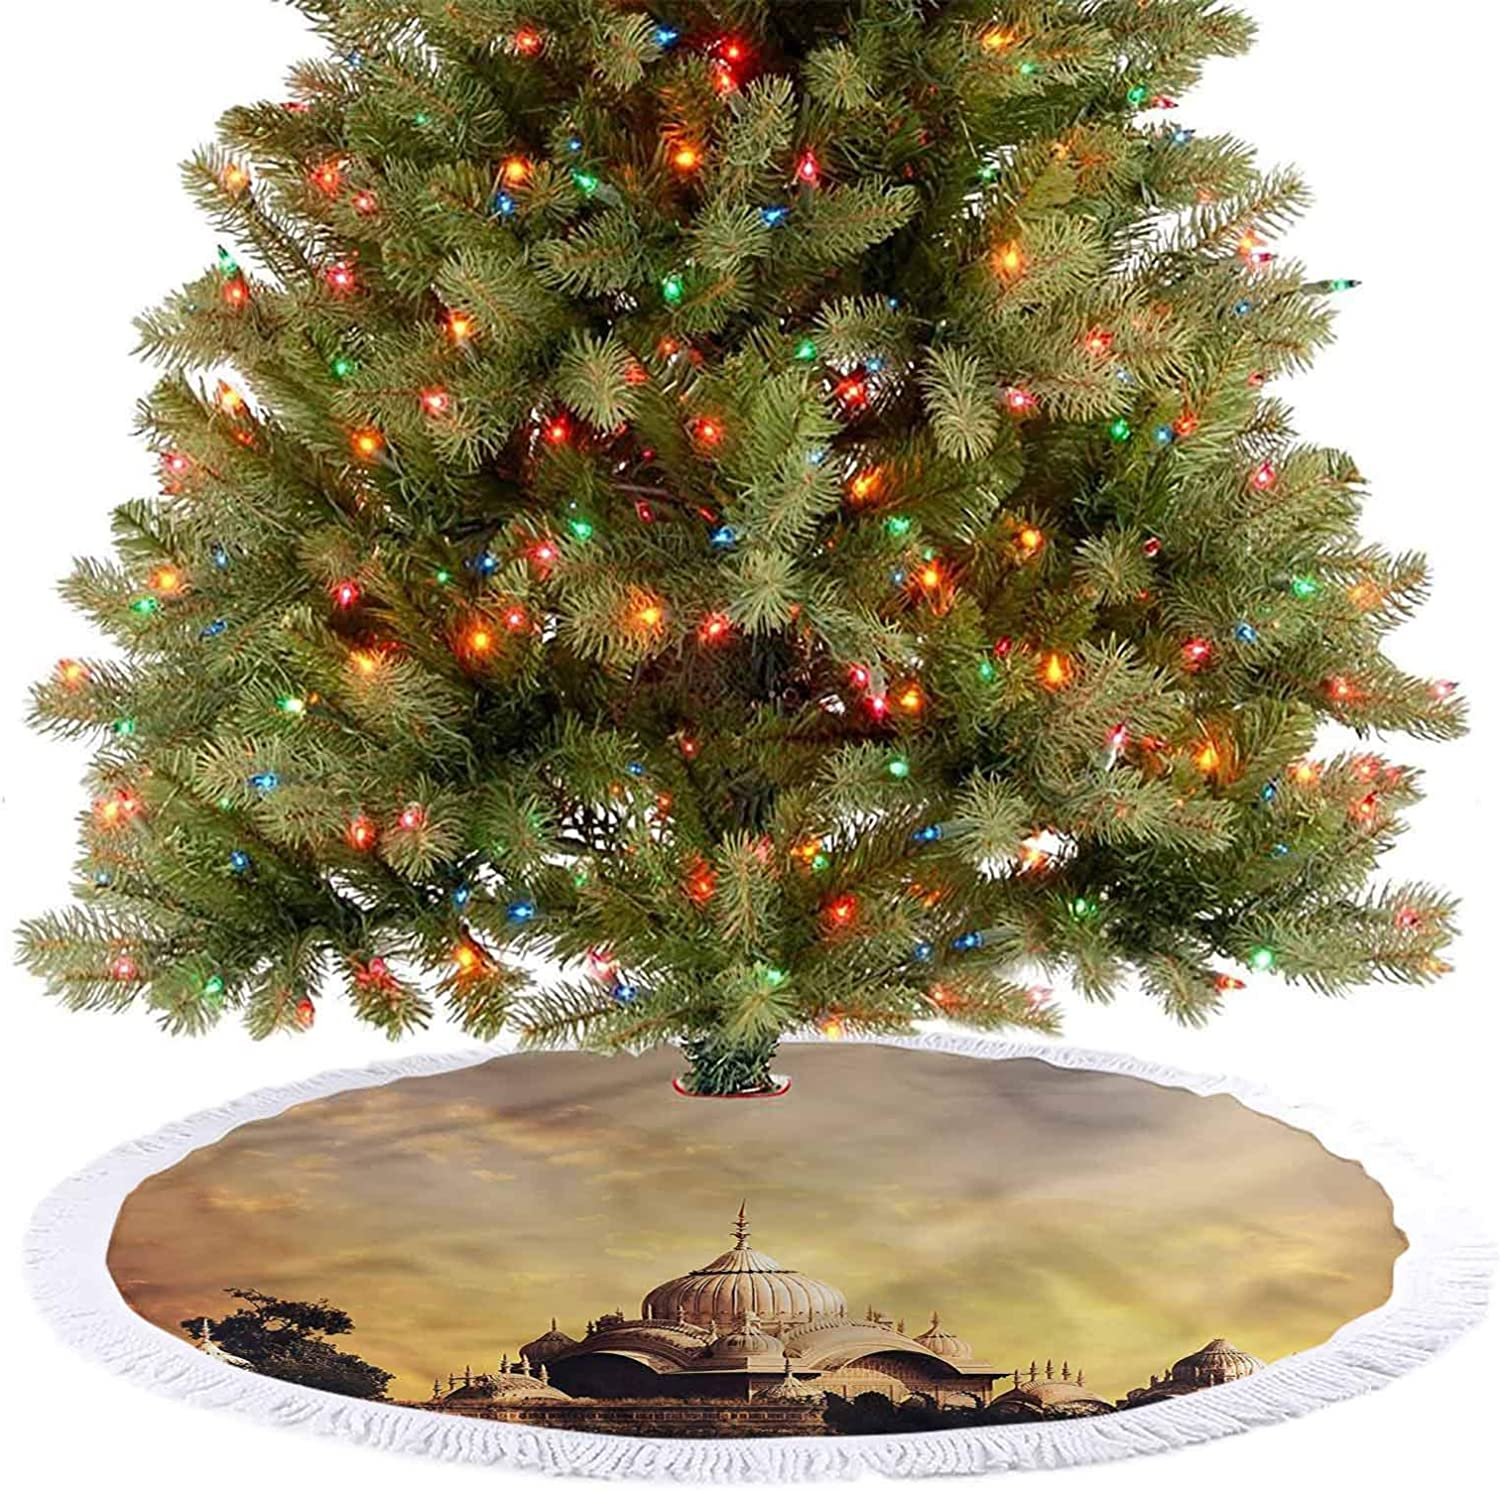 ThinkingPower Modern Tree Skirt Imperial Palace Old Monument Xmas Party Holiday Decorations for Merry Christmas Holiday Party Decorations Diameter - 48 Inch